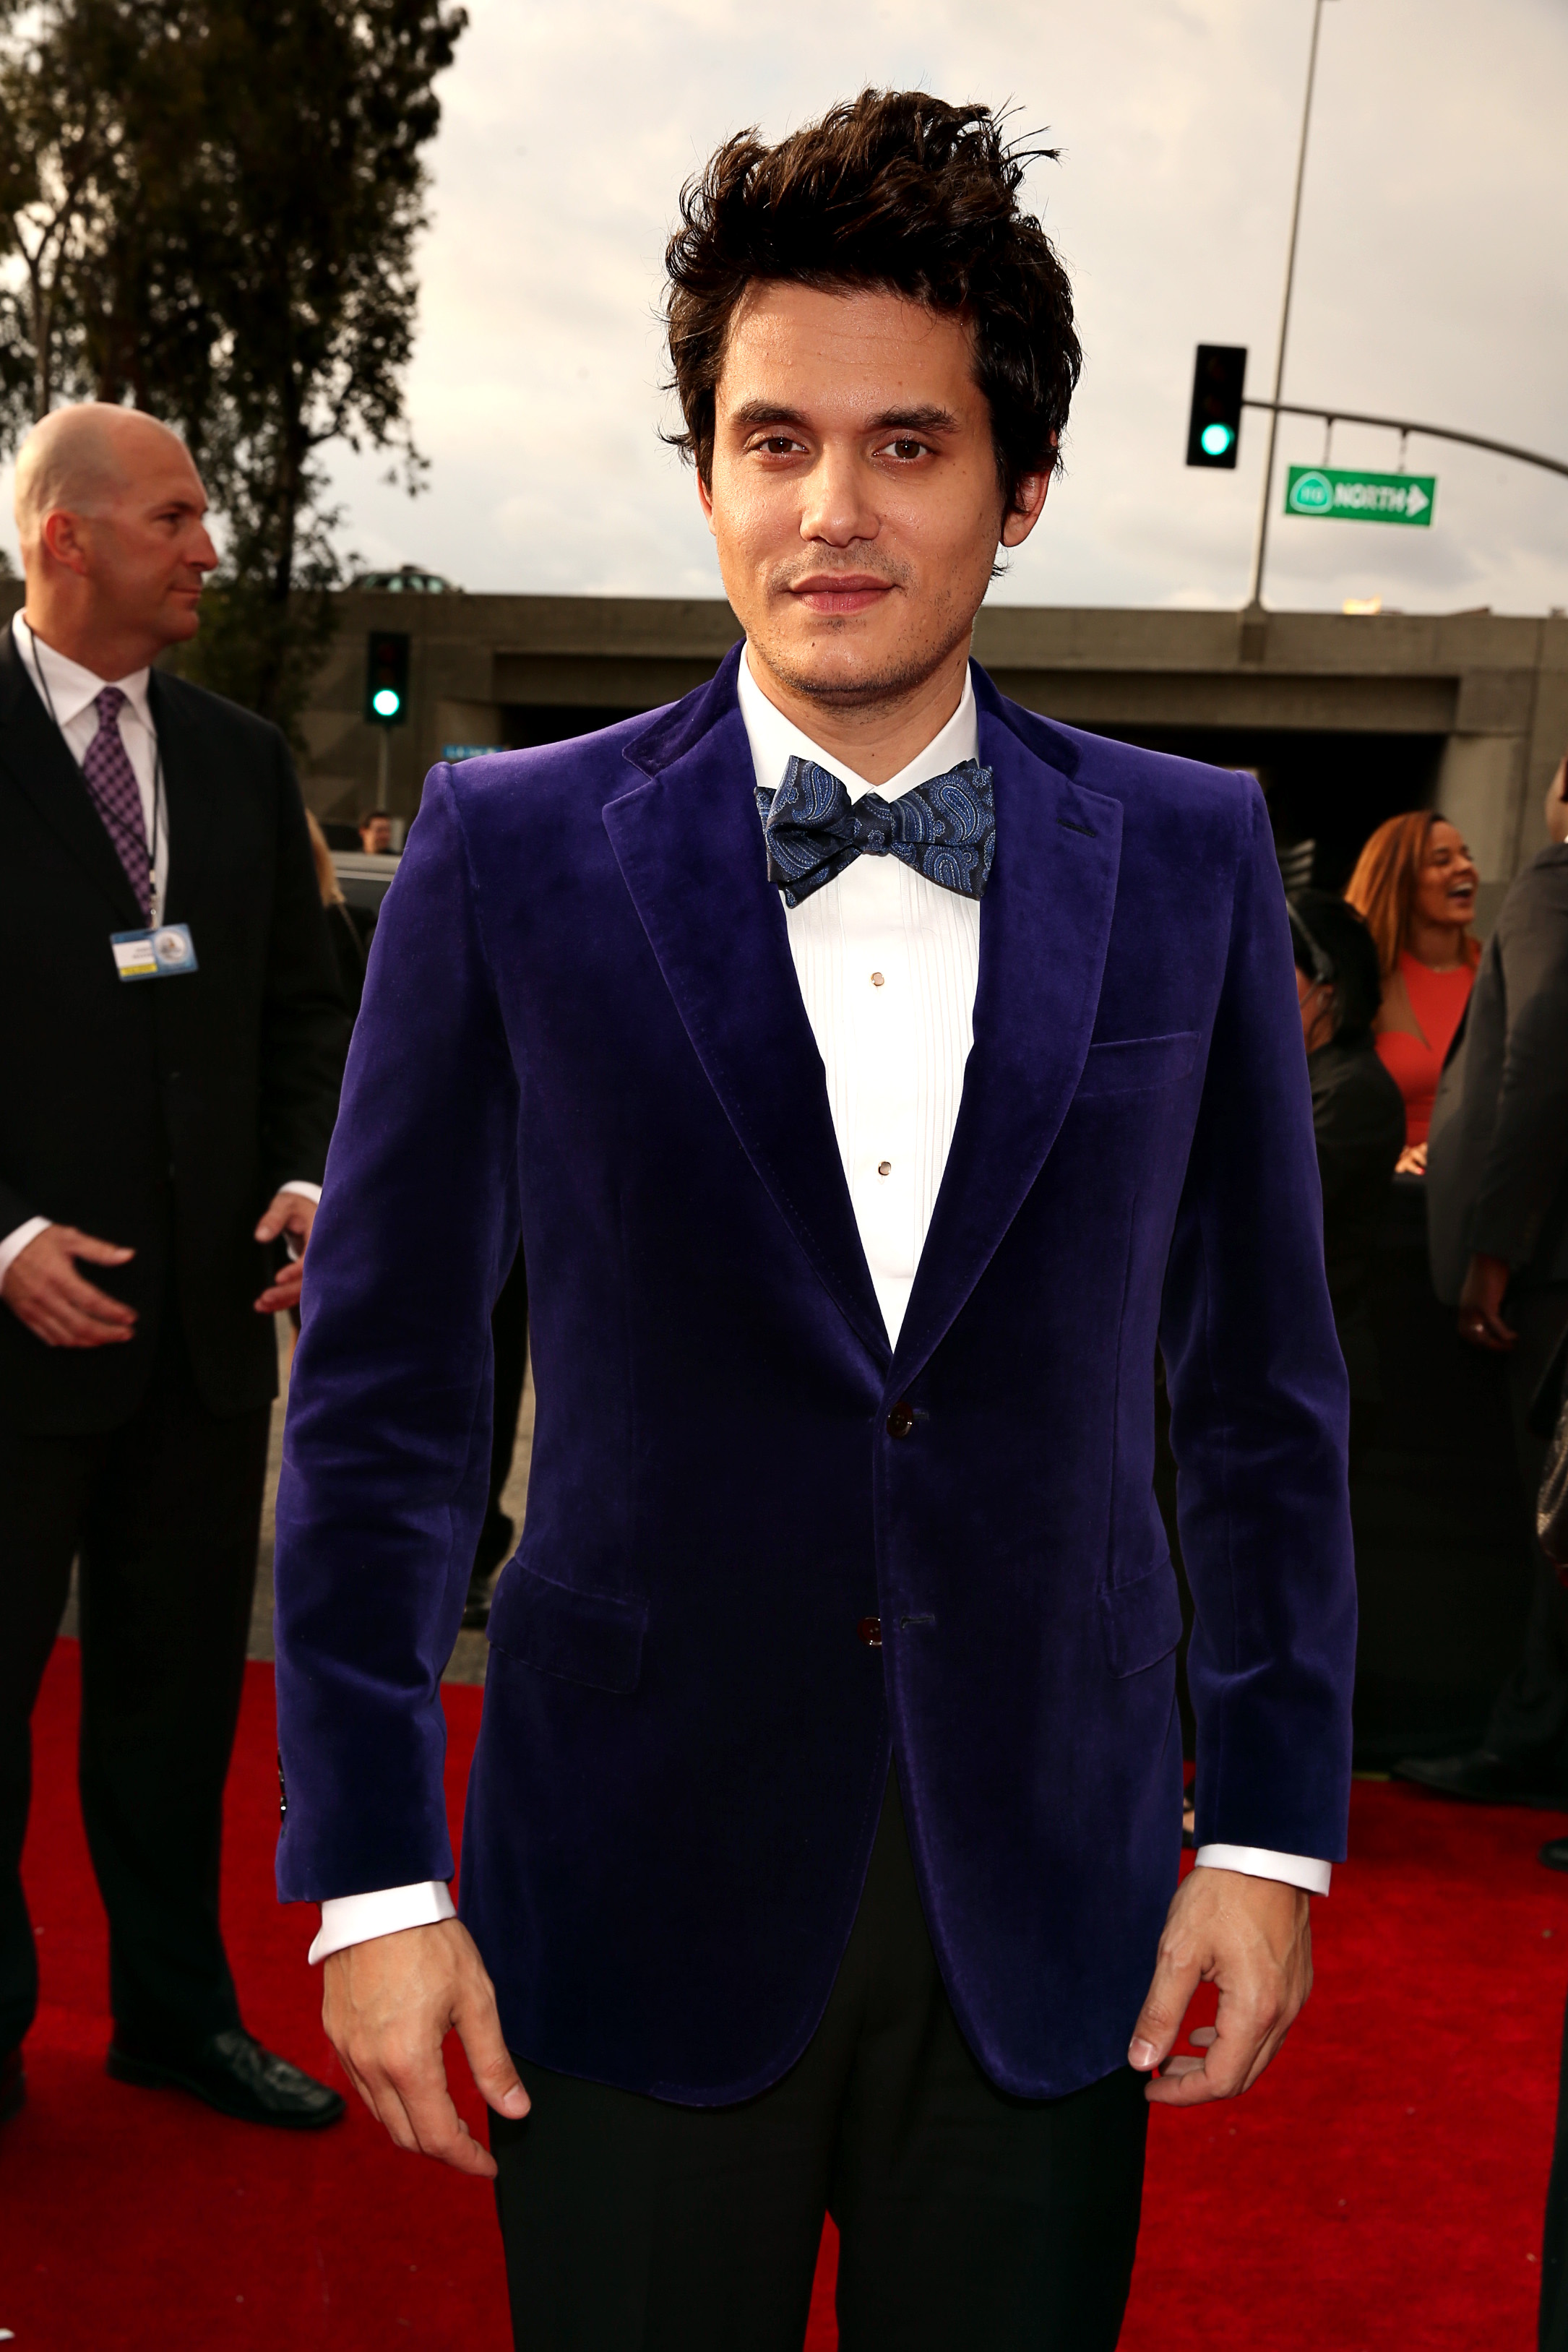 John Mayer stepped out for the Grammy Awards in LA.